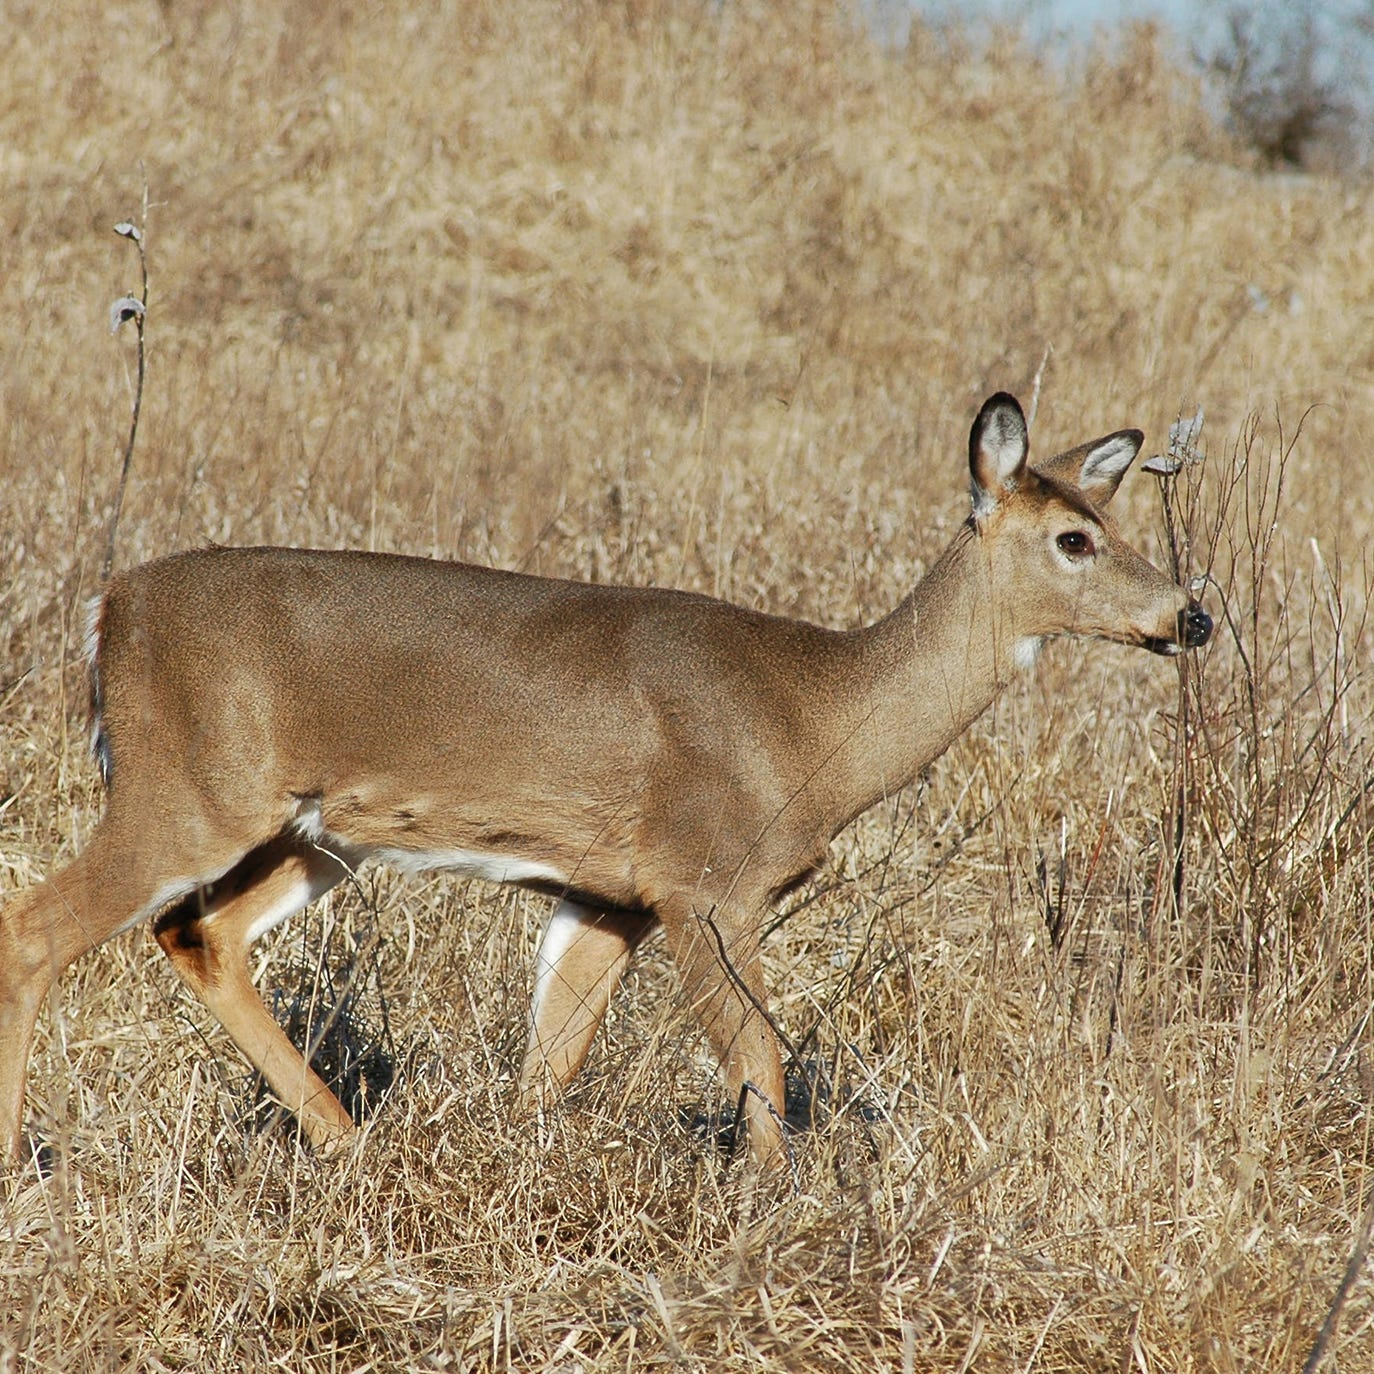 A new CWD management zone has been mapped out. Here's what you need to know.